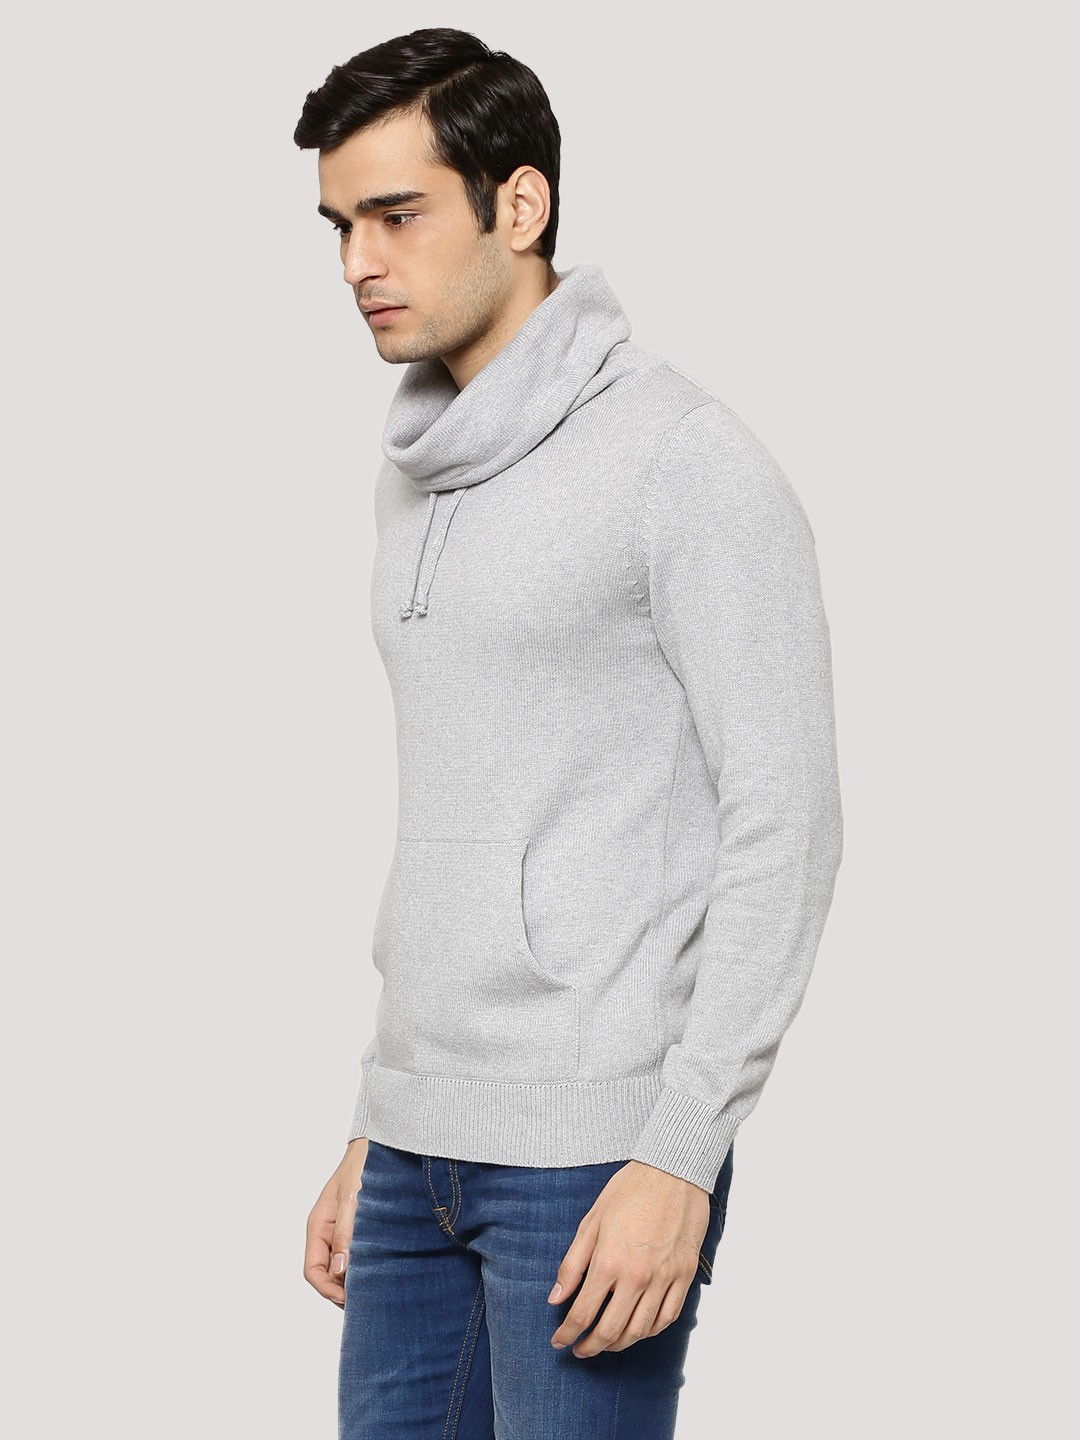 Buy Mens Cowl Neck Sweater Her Sweater